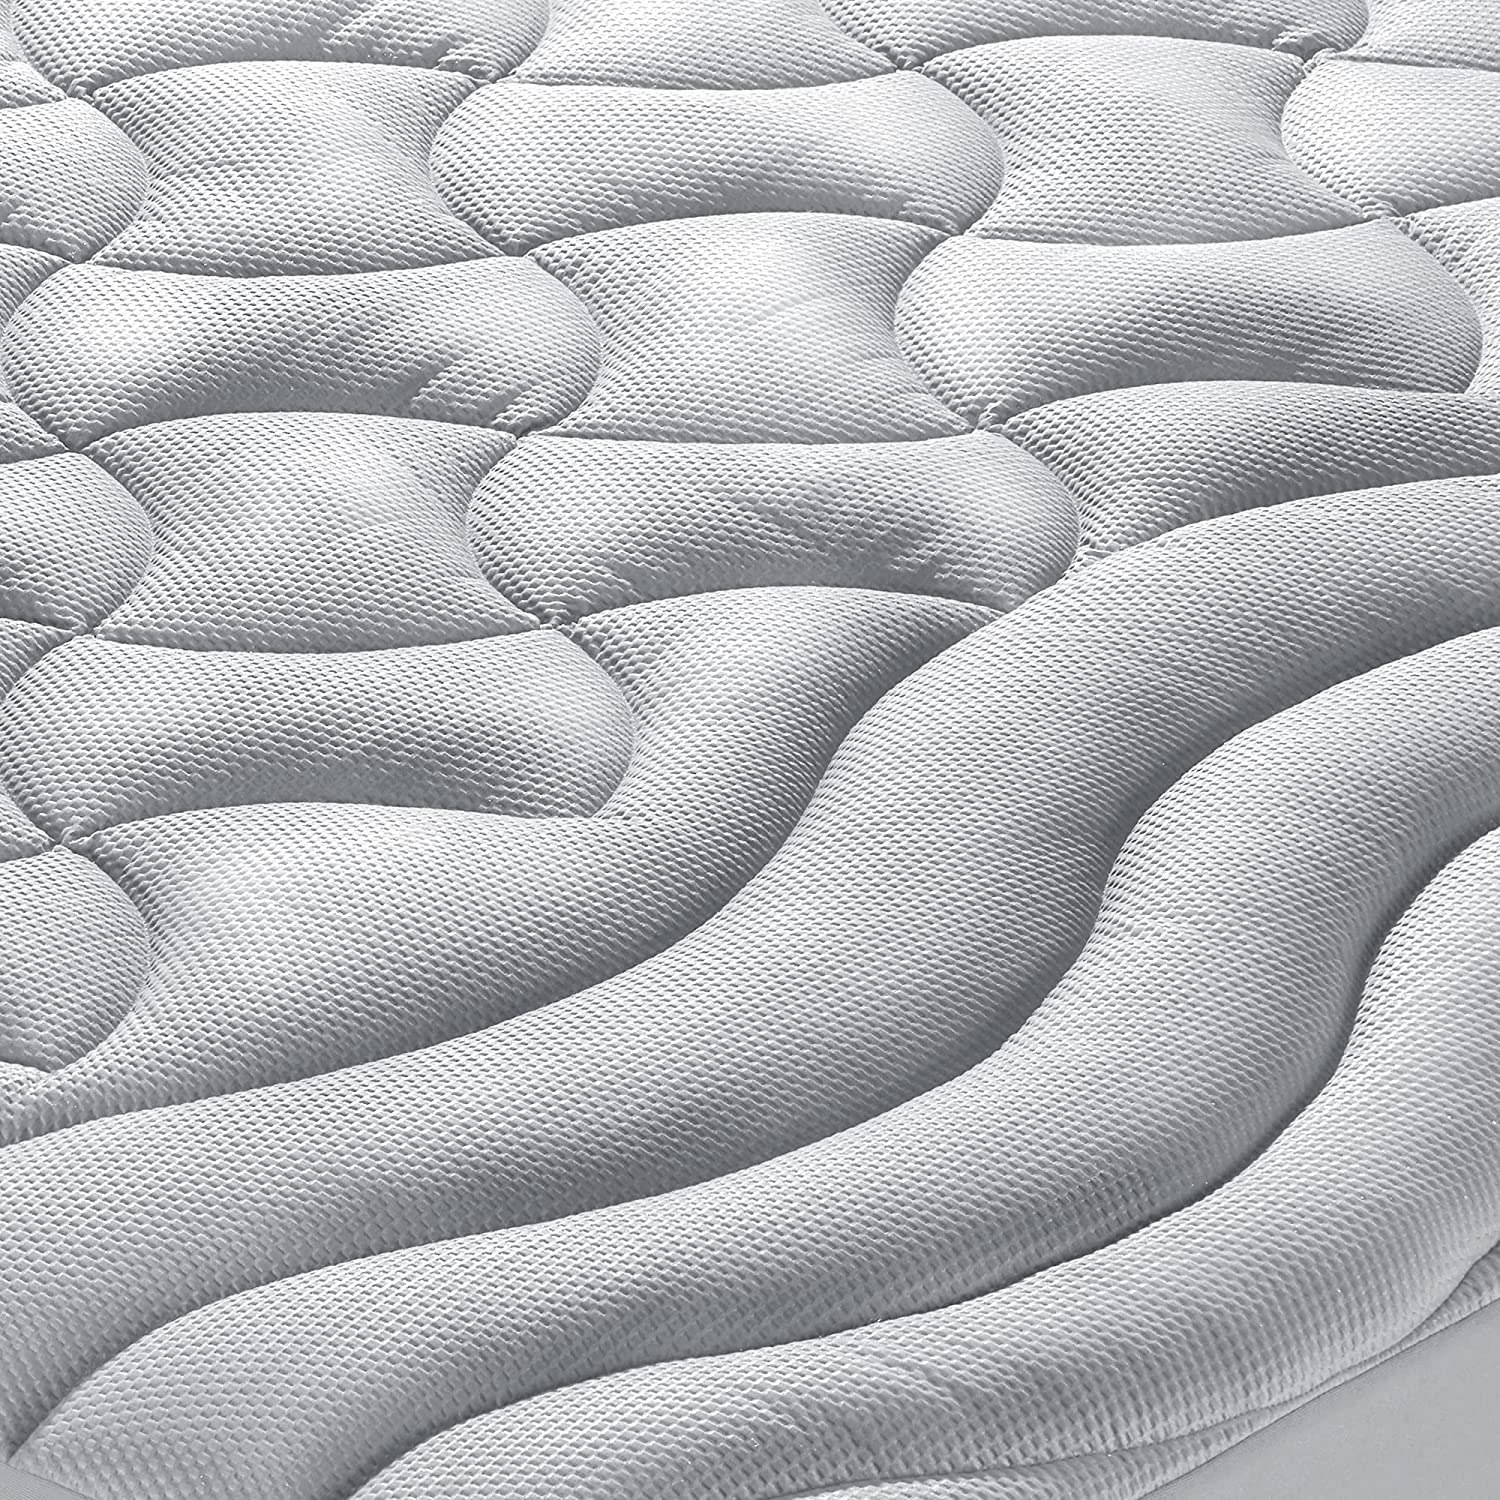 SLEEP ZONE Athlete-Grade Mattress Max 82% OFF Pad S Cover Cooling Overfilled OFFicial shop